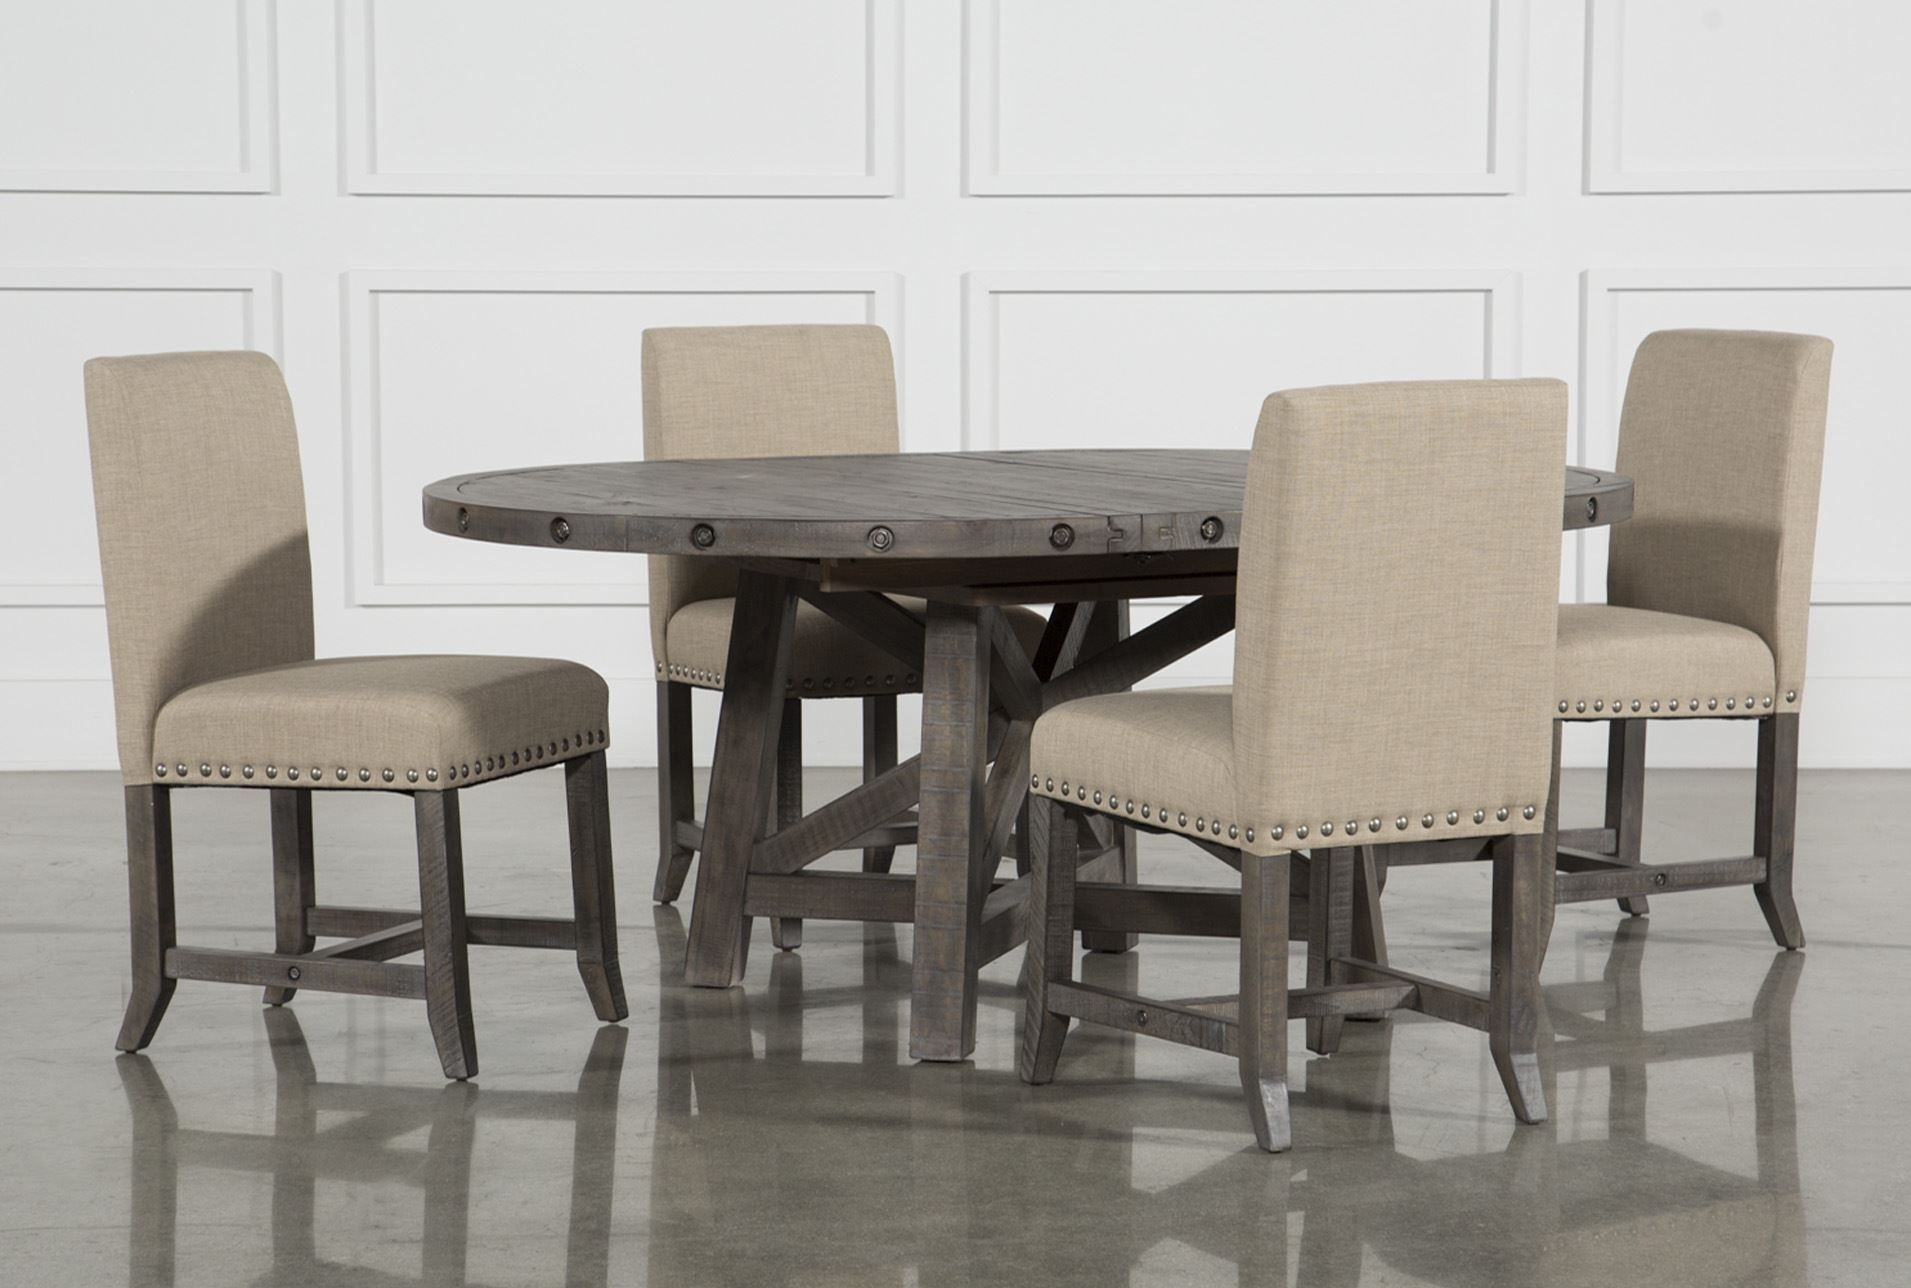 Jaxon Grey 5 Piece Round Extension Dining Set W/upholstered Chairs Regarding Most Current Jaxon Grey 6 Piece Rectangle Extension Dining Sets With Bench & Uph Chairs (Photo 3 of 20)